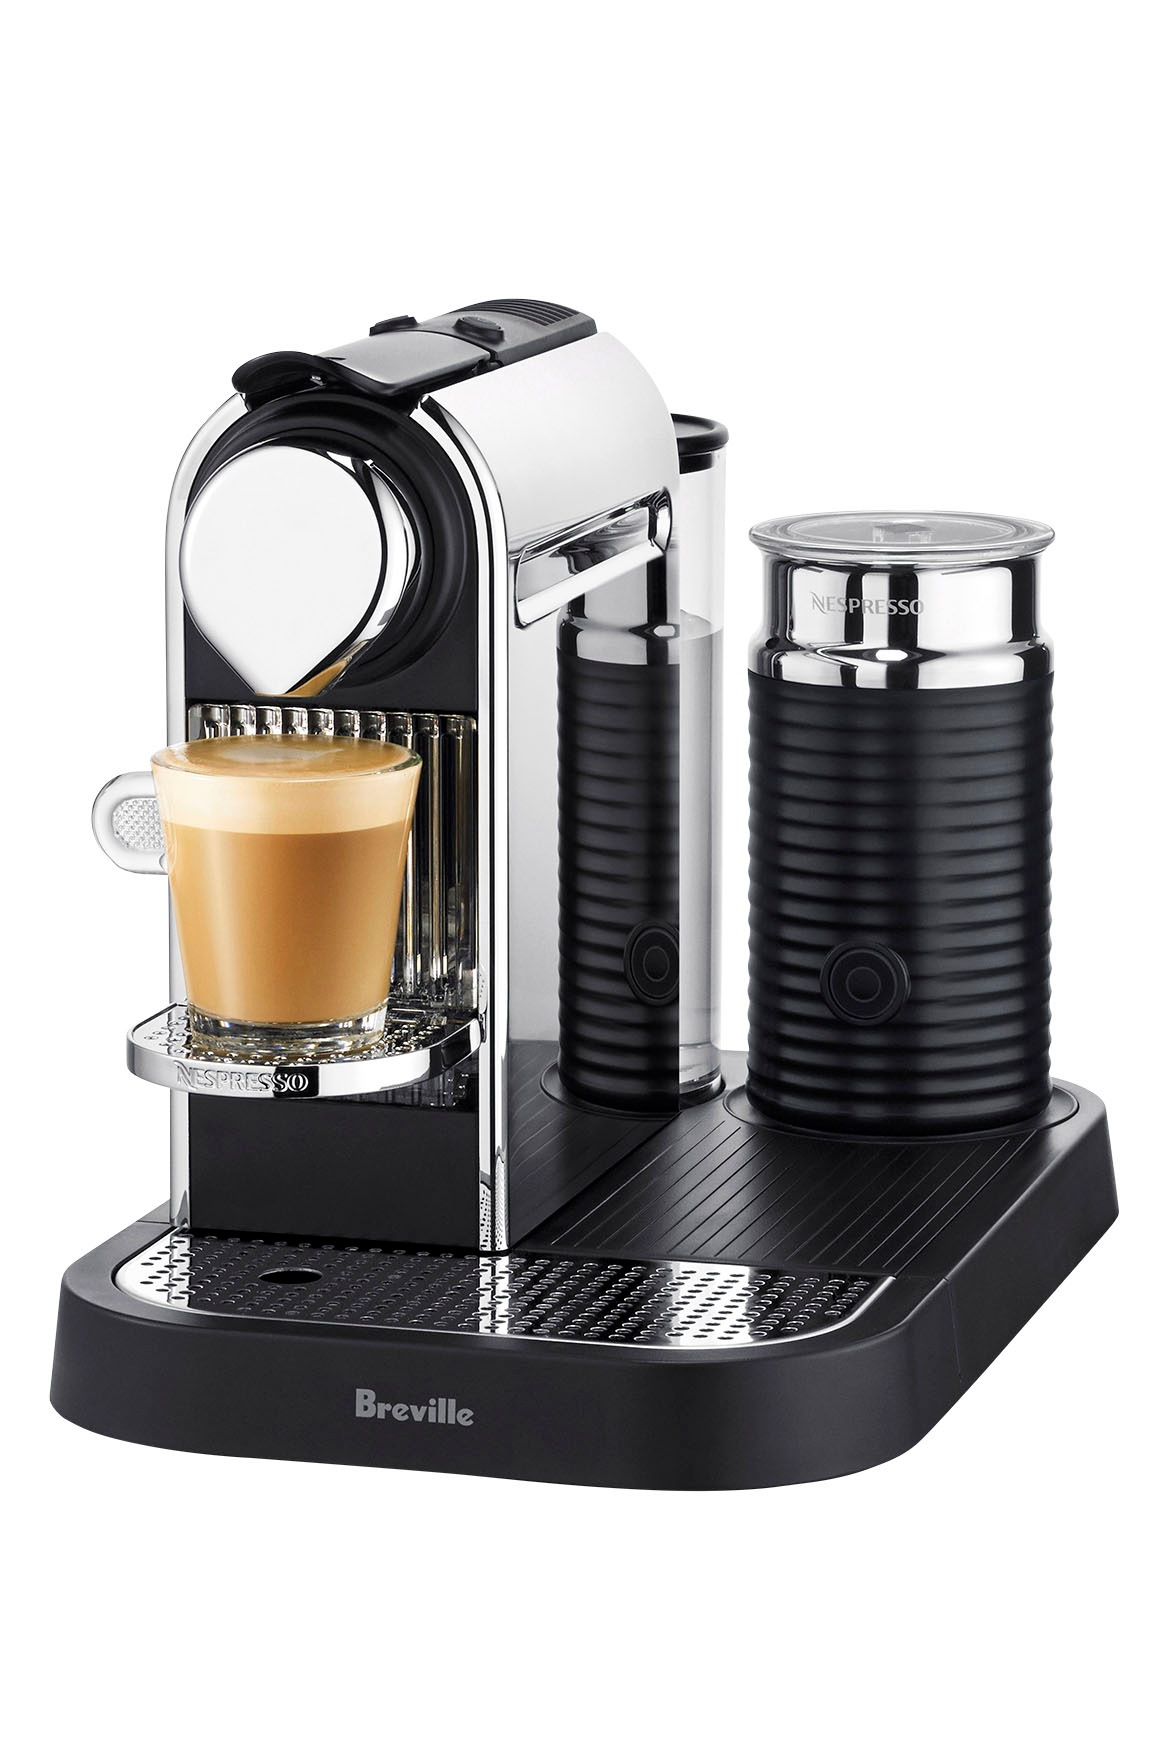 Nespresso by breville bec600mc citiz milk capsule coffee maker chrom - Machine nespresso 2 tasses ...